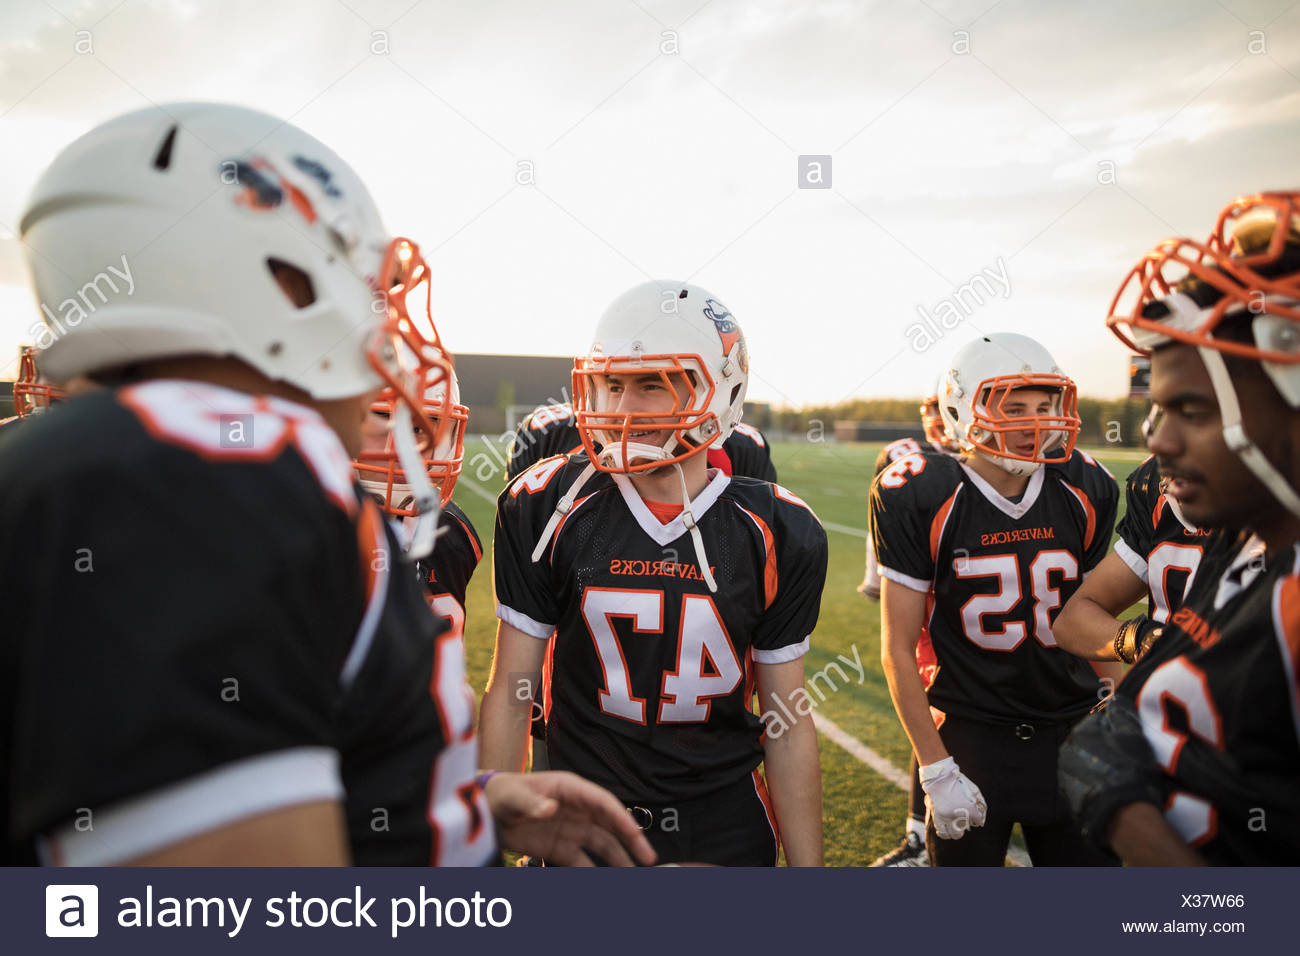 Teenage boy high school football team talking in huddle on football field - Stock Image